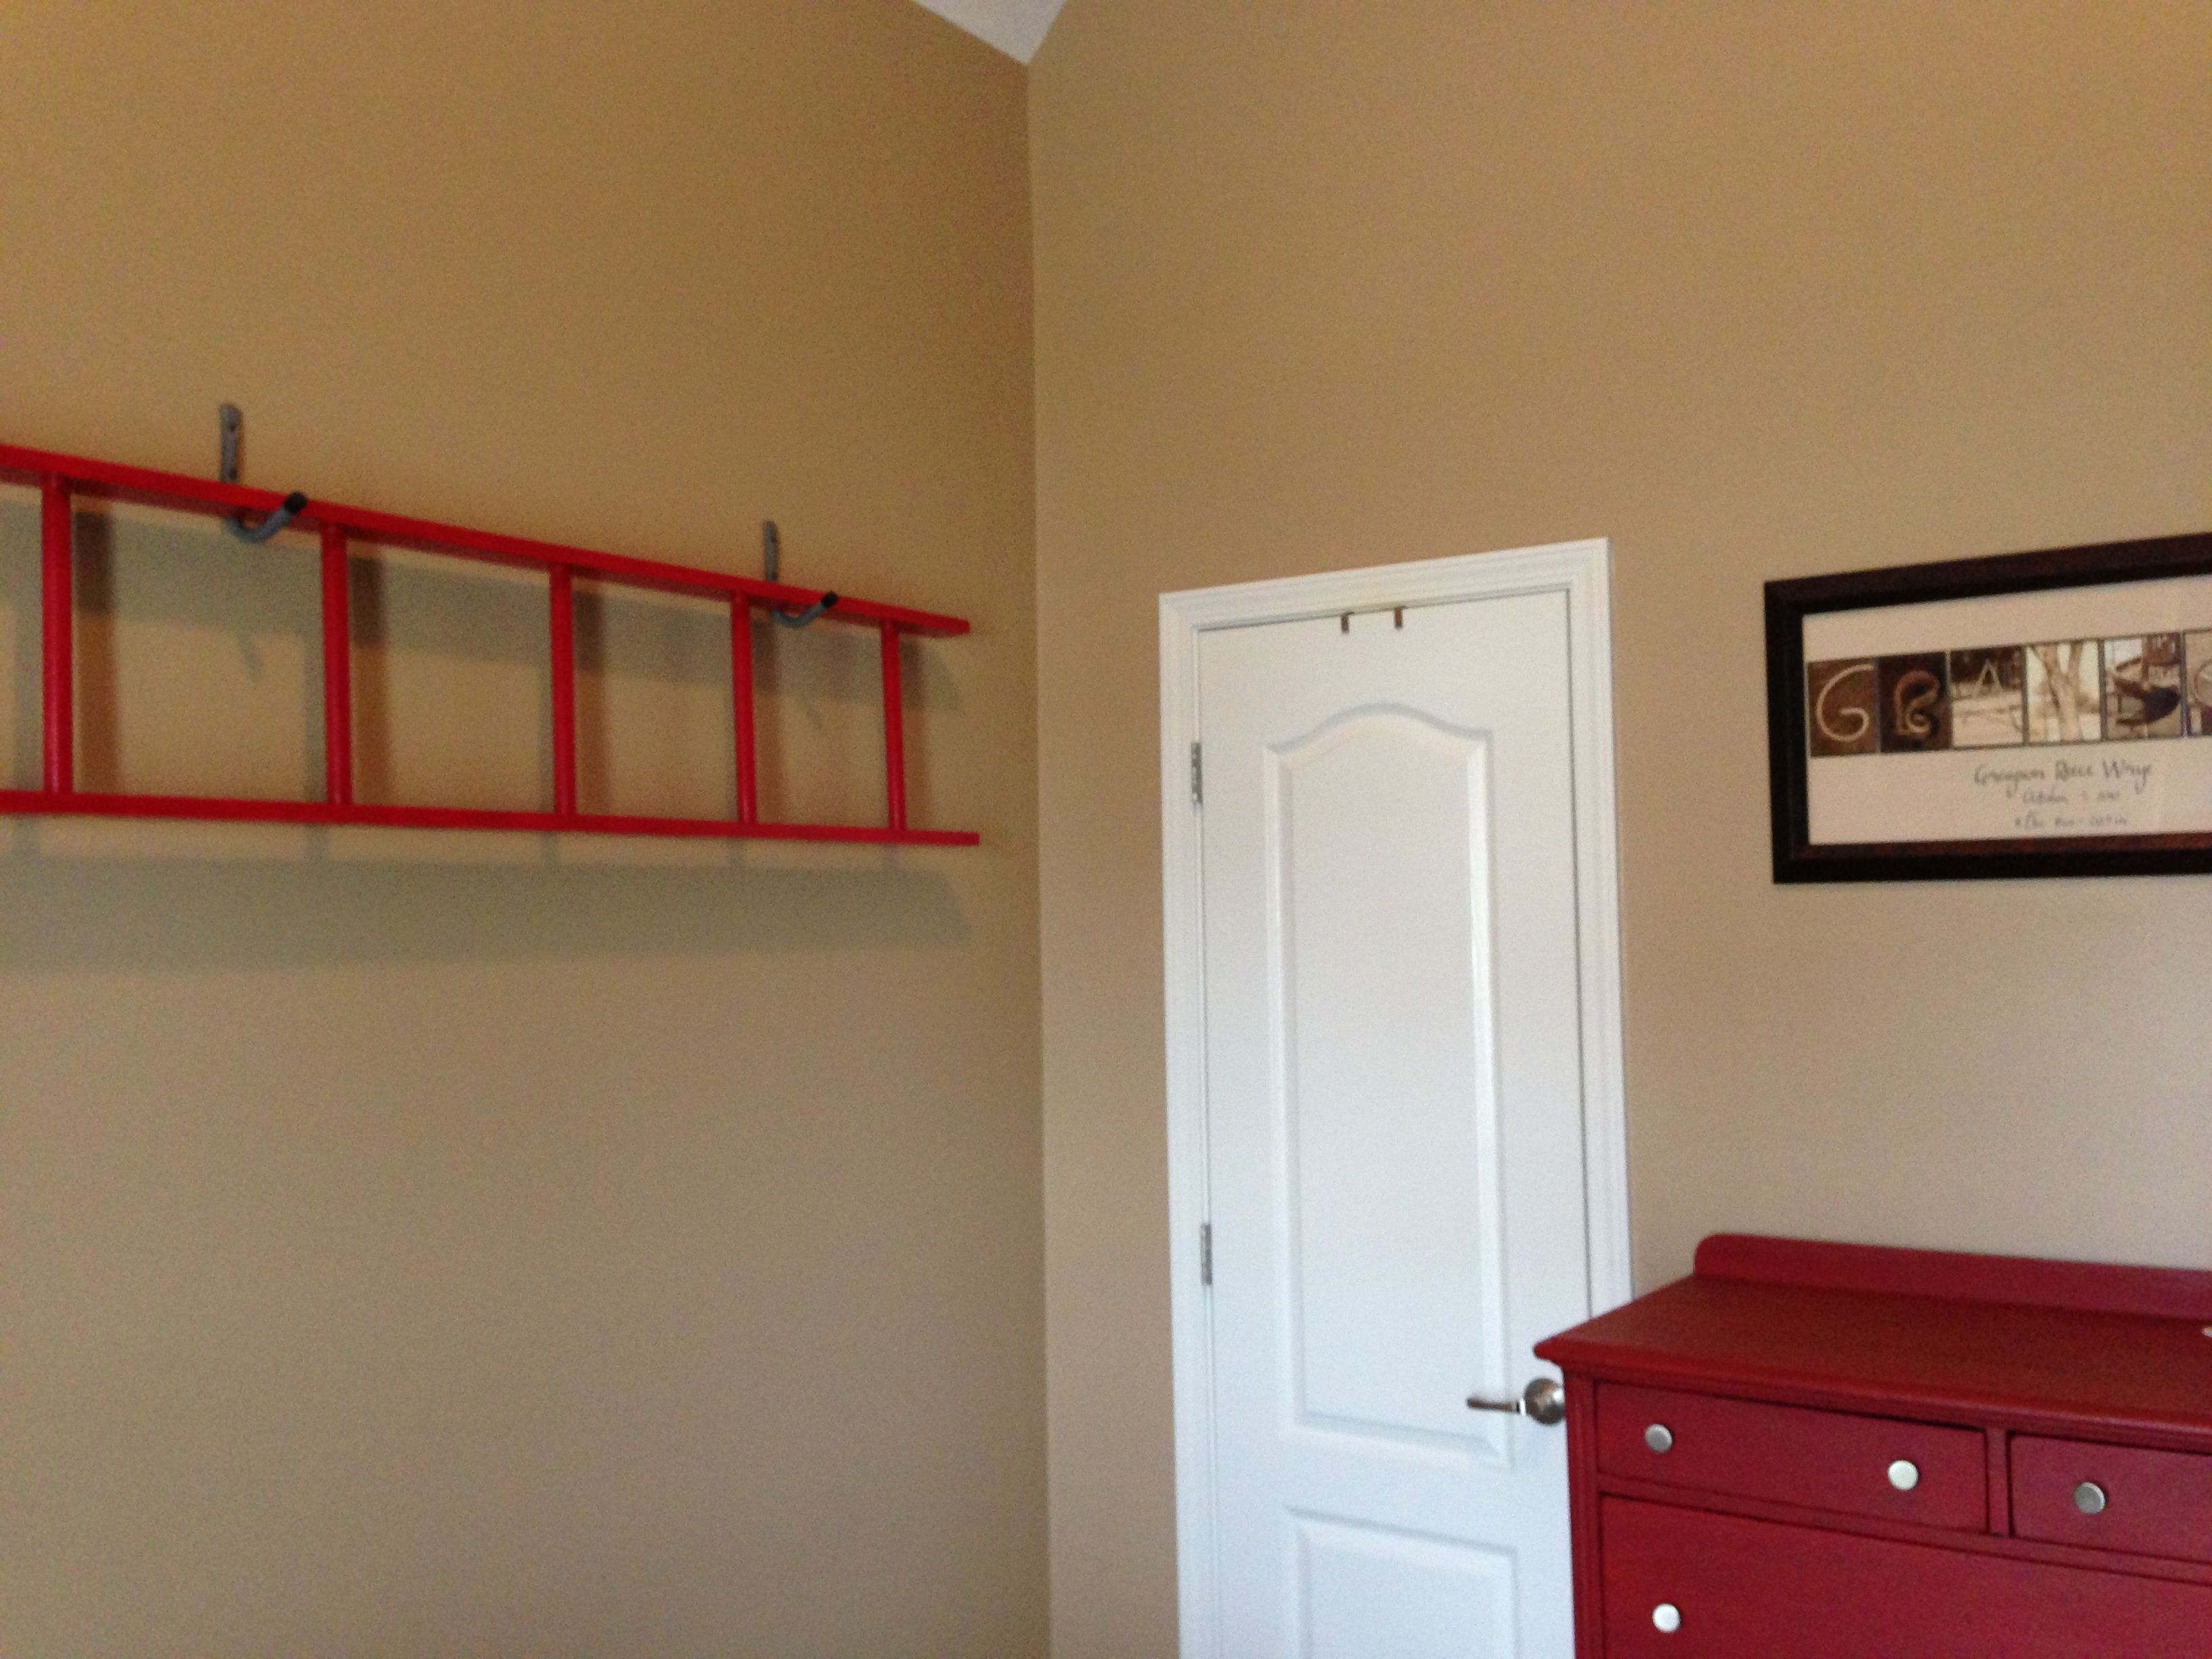 Ladder Decor For Toddler Firetruck Room.